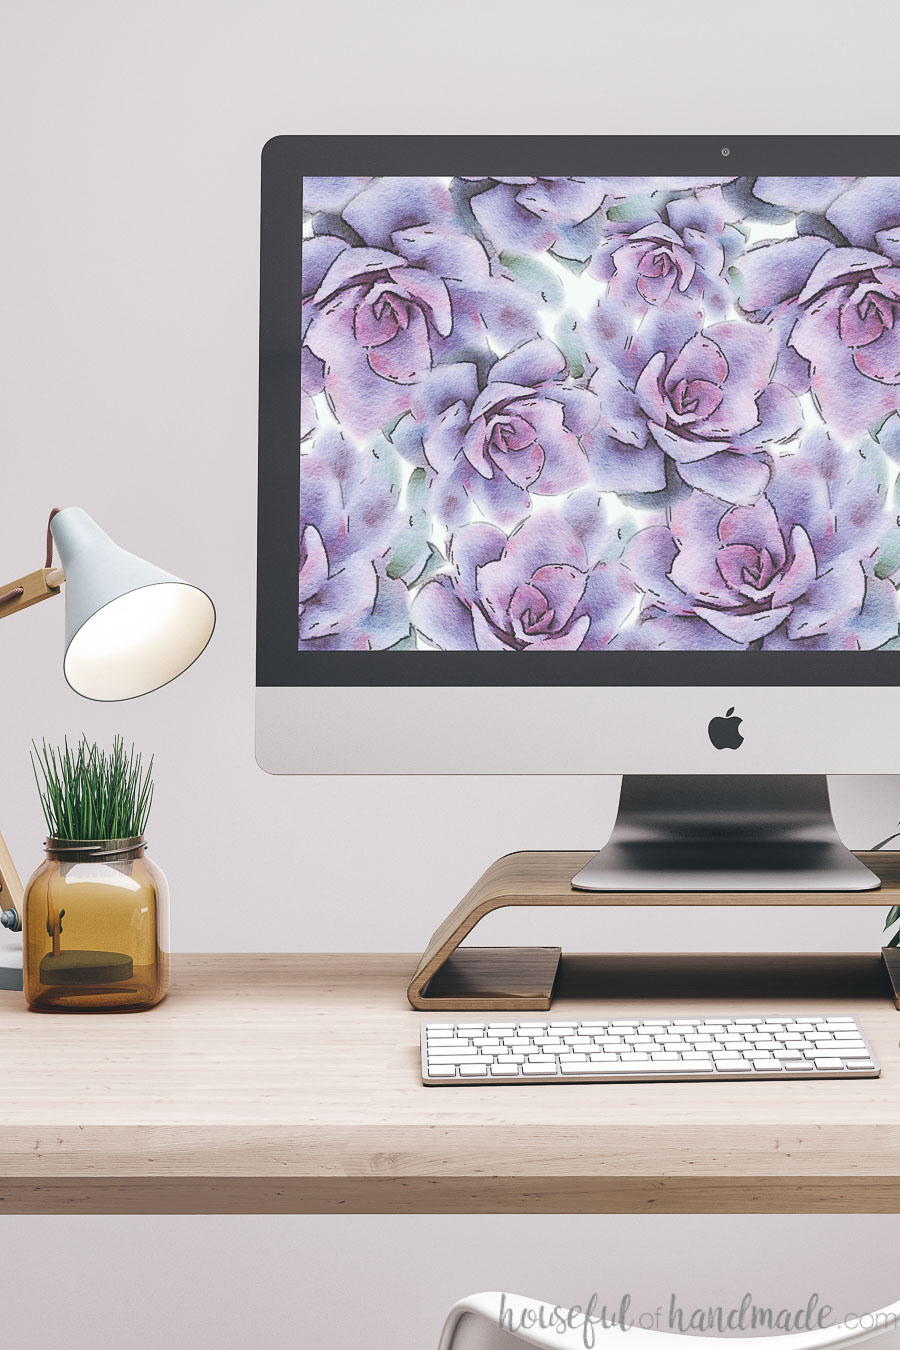 iMac computer on a desk with digital wallpaper for January on the background.